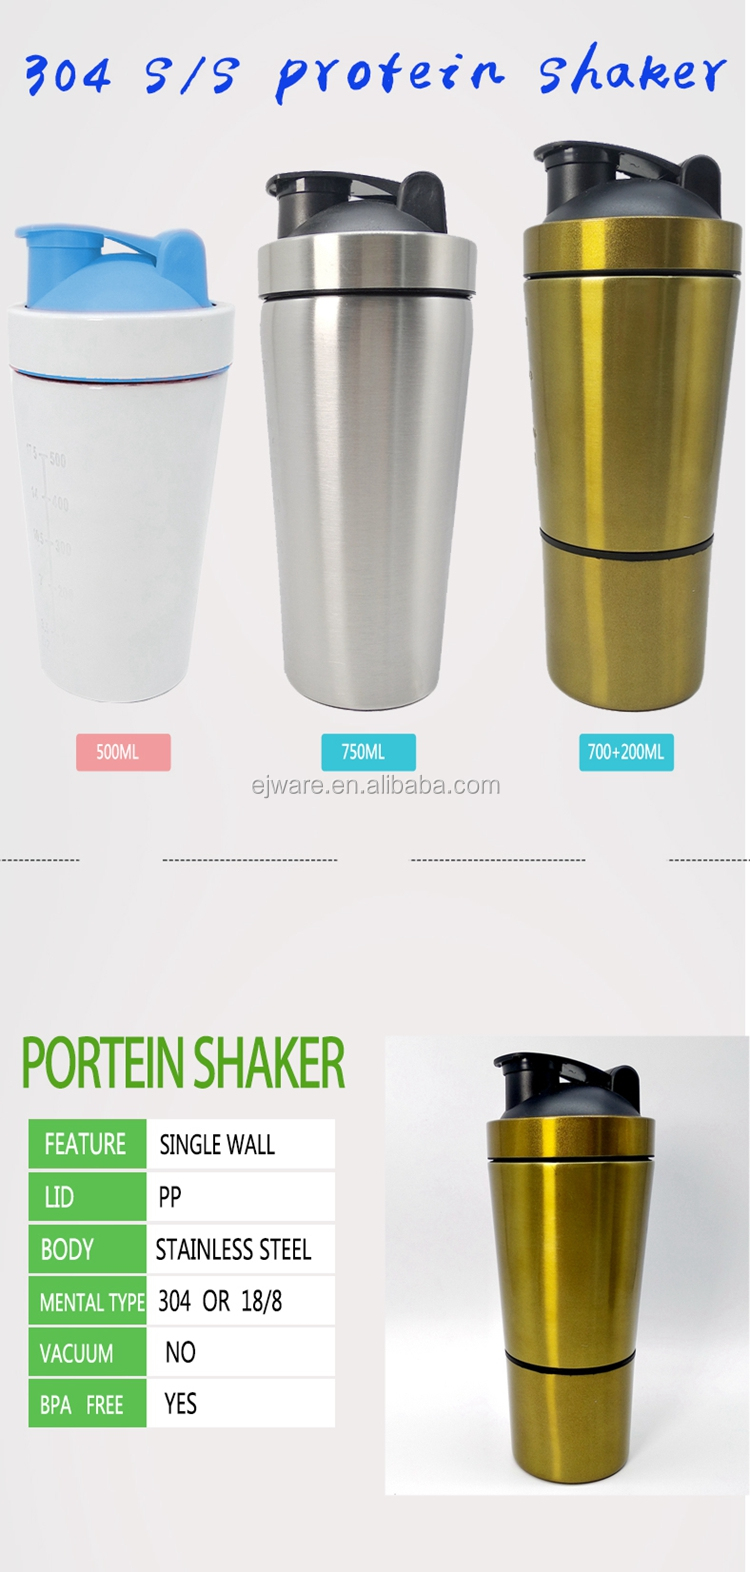 New Single Wall 304 Stainless Steel Protein Shaker Bottles With Storage